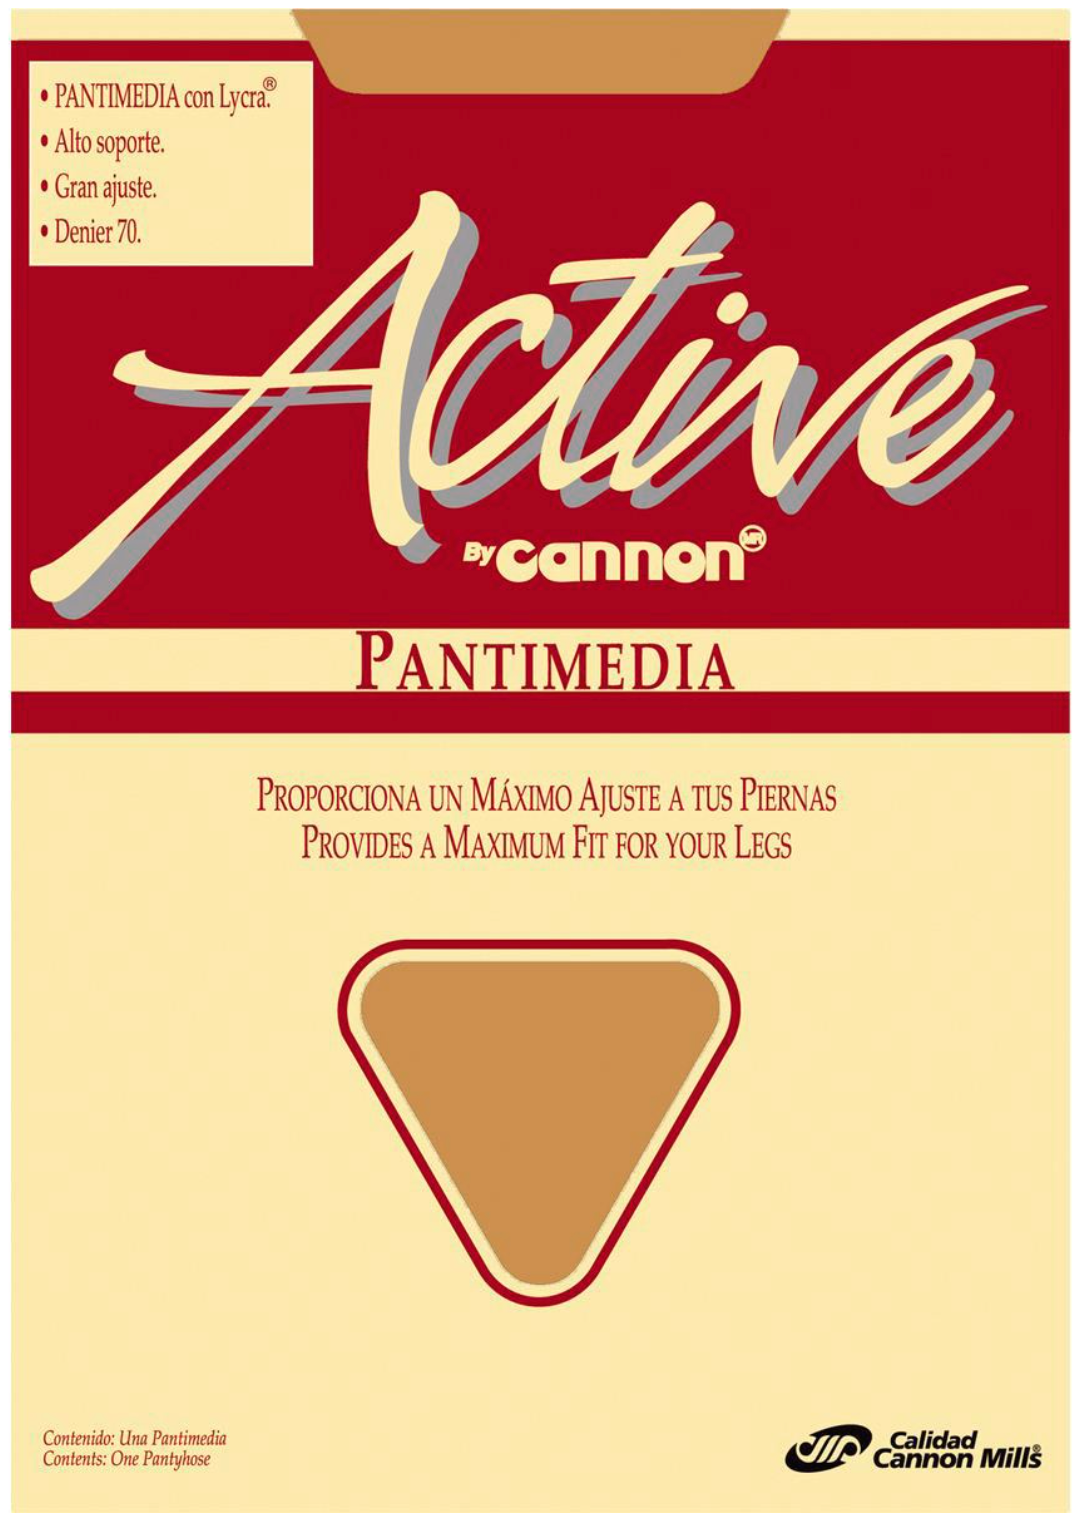 Pantimedia Active By Cannon